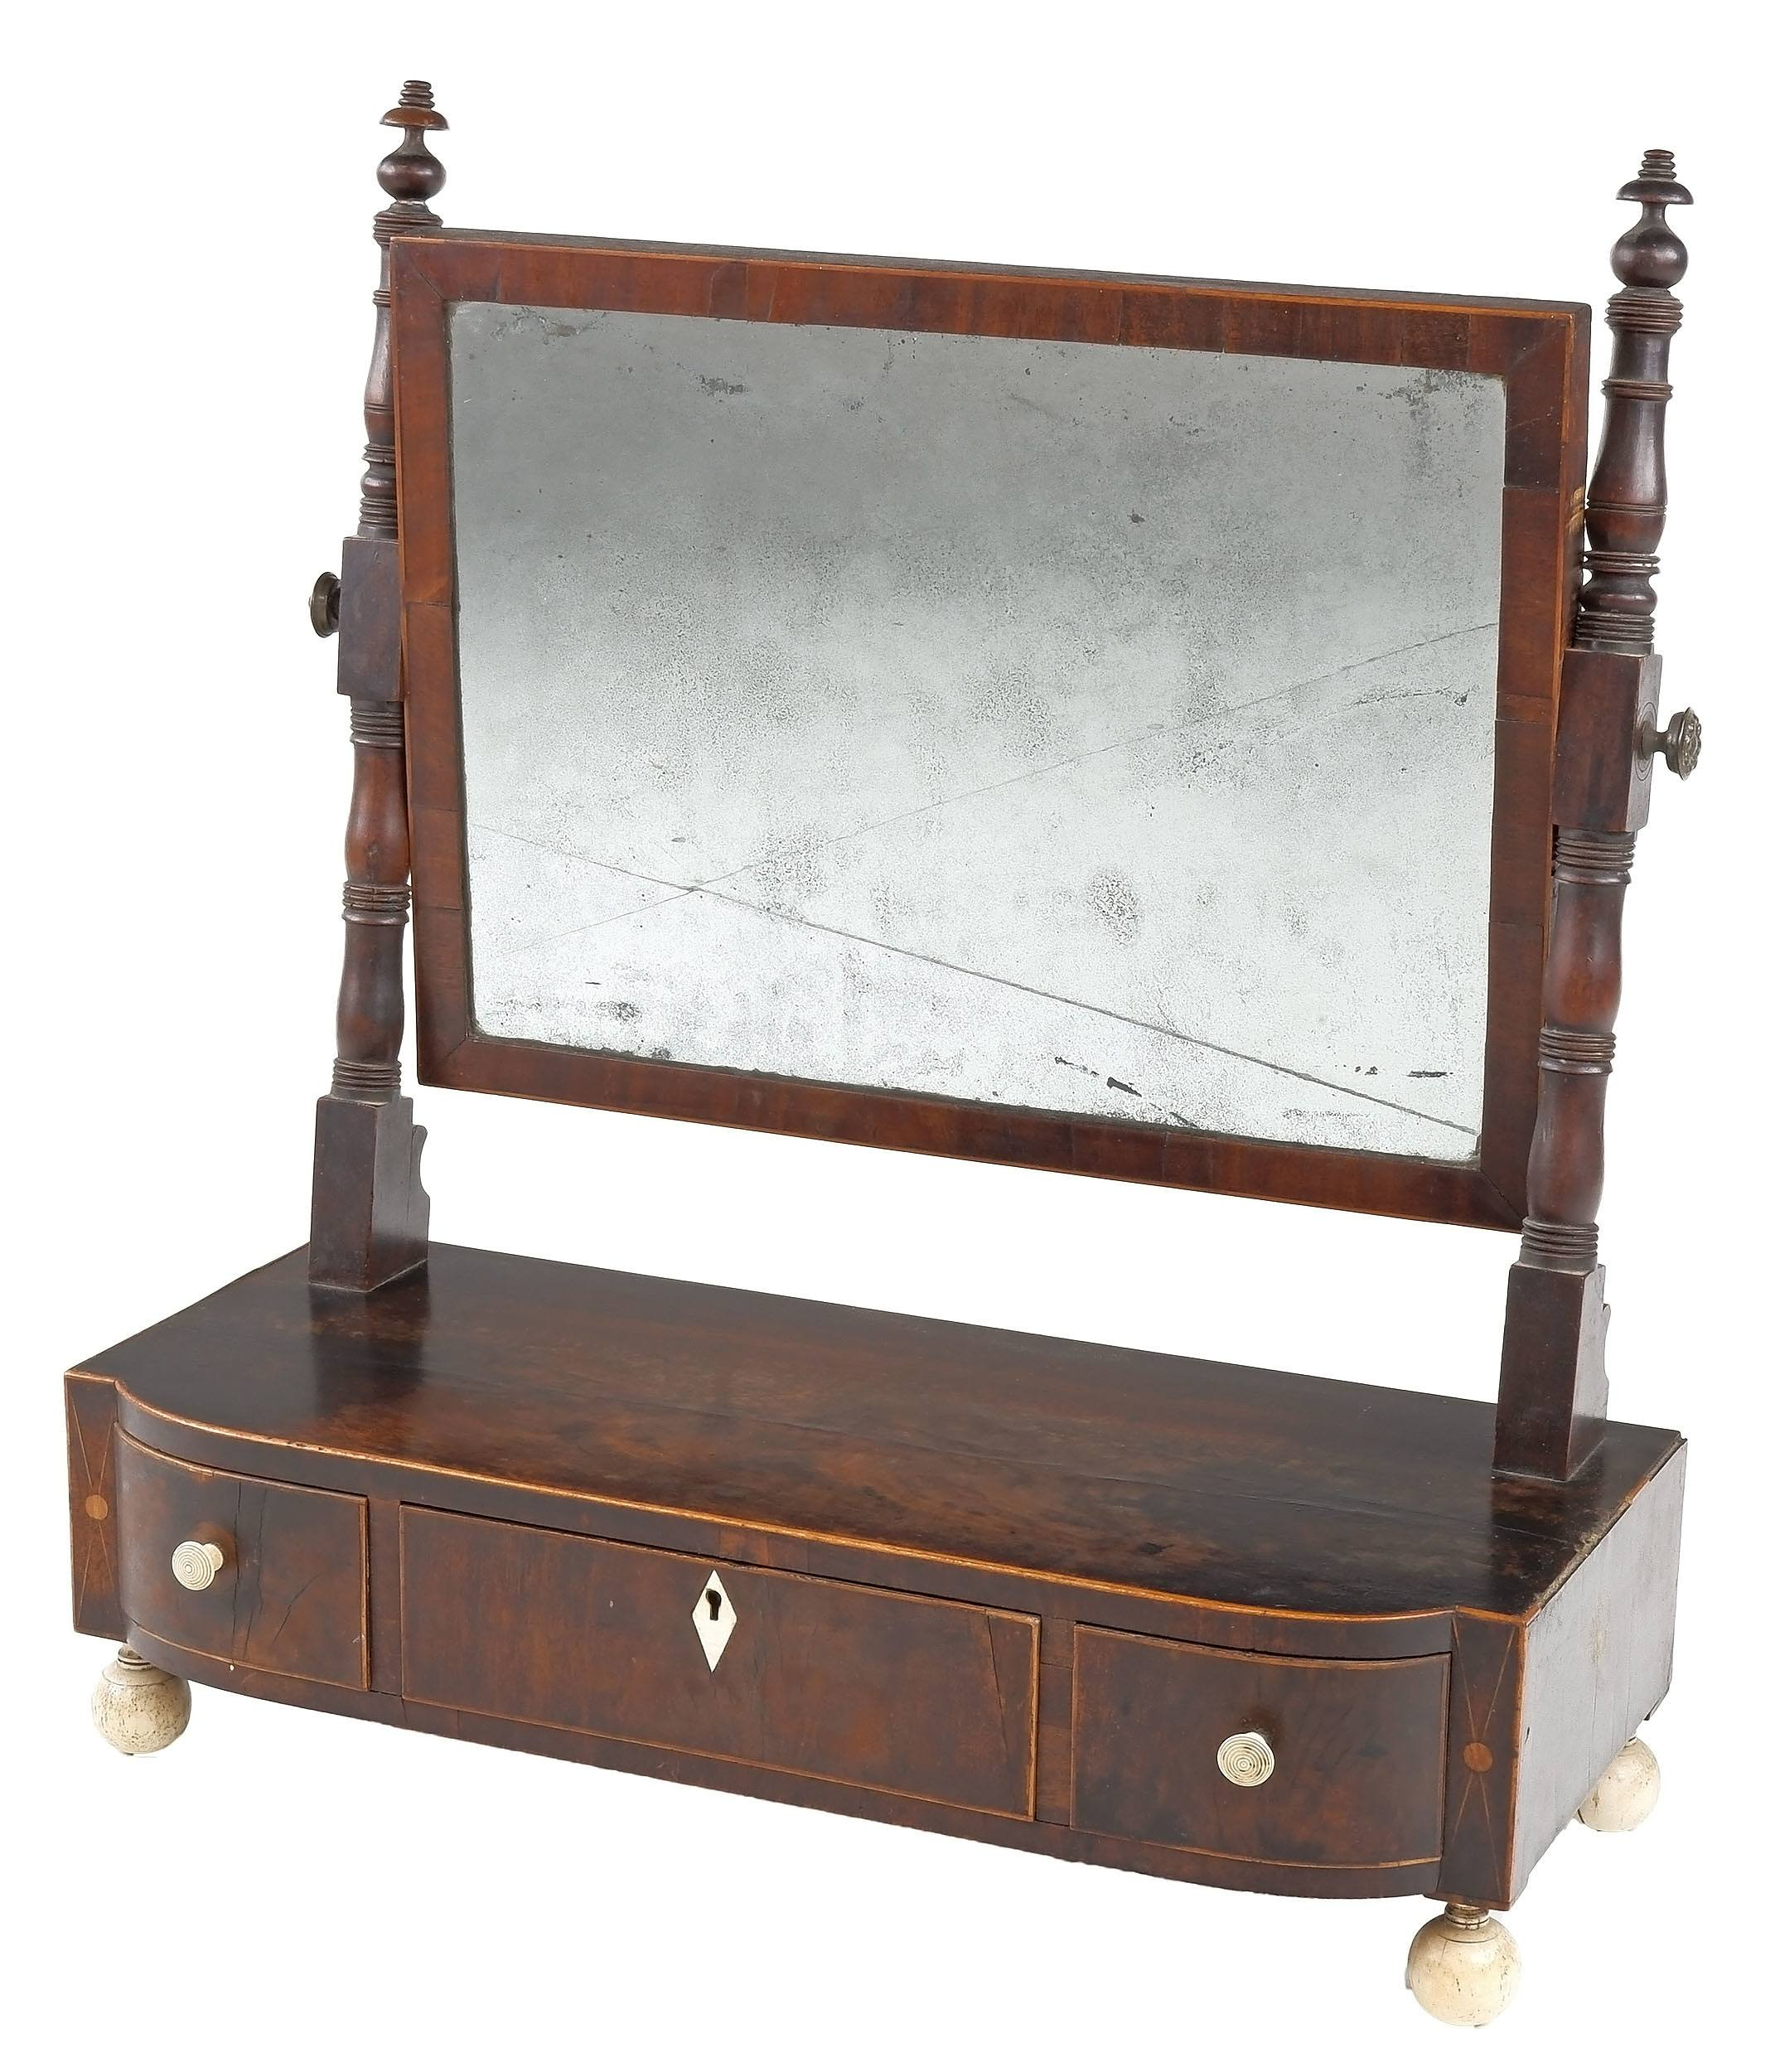 'George III String Inlaid and Ivory Adorned Mahogany Toilet Mirror Circa 1800'